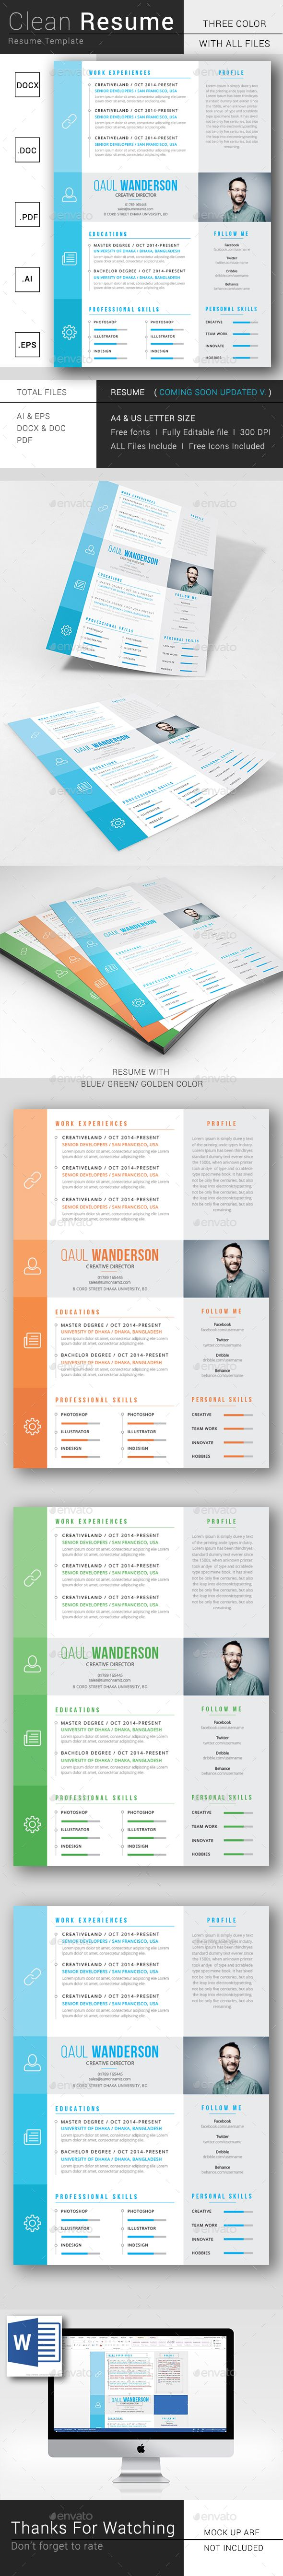 Simple Resume/CV | Resume Templates | Pinterest | Plantilla cv ...